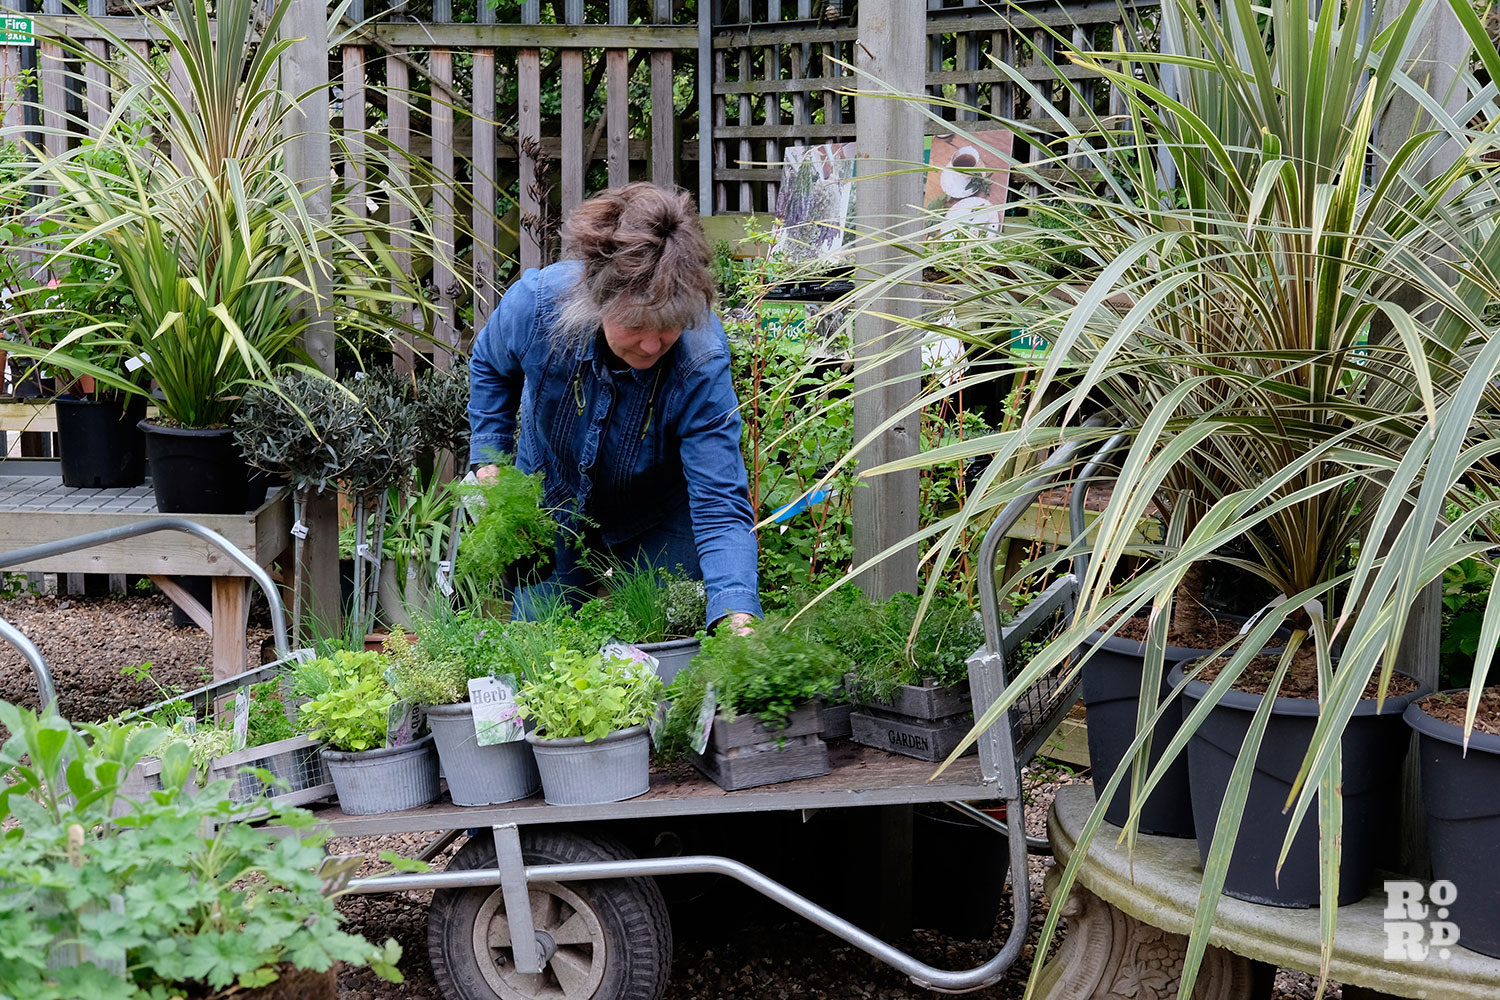 Female employee at Growing Concerns, a gardening centre in Victoria Park, East London, leaning over to choose plants